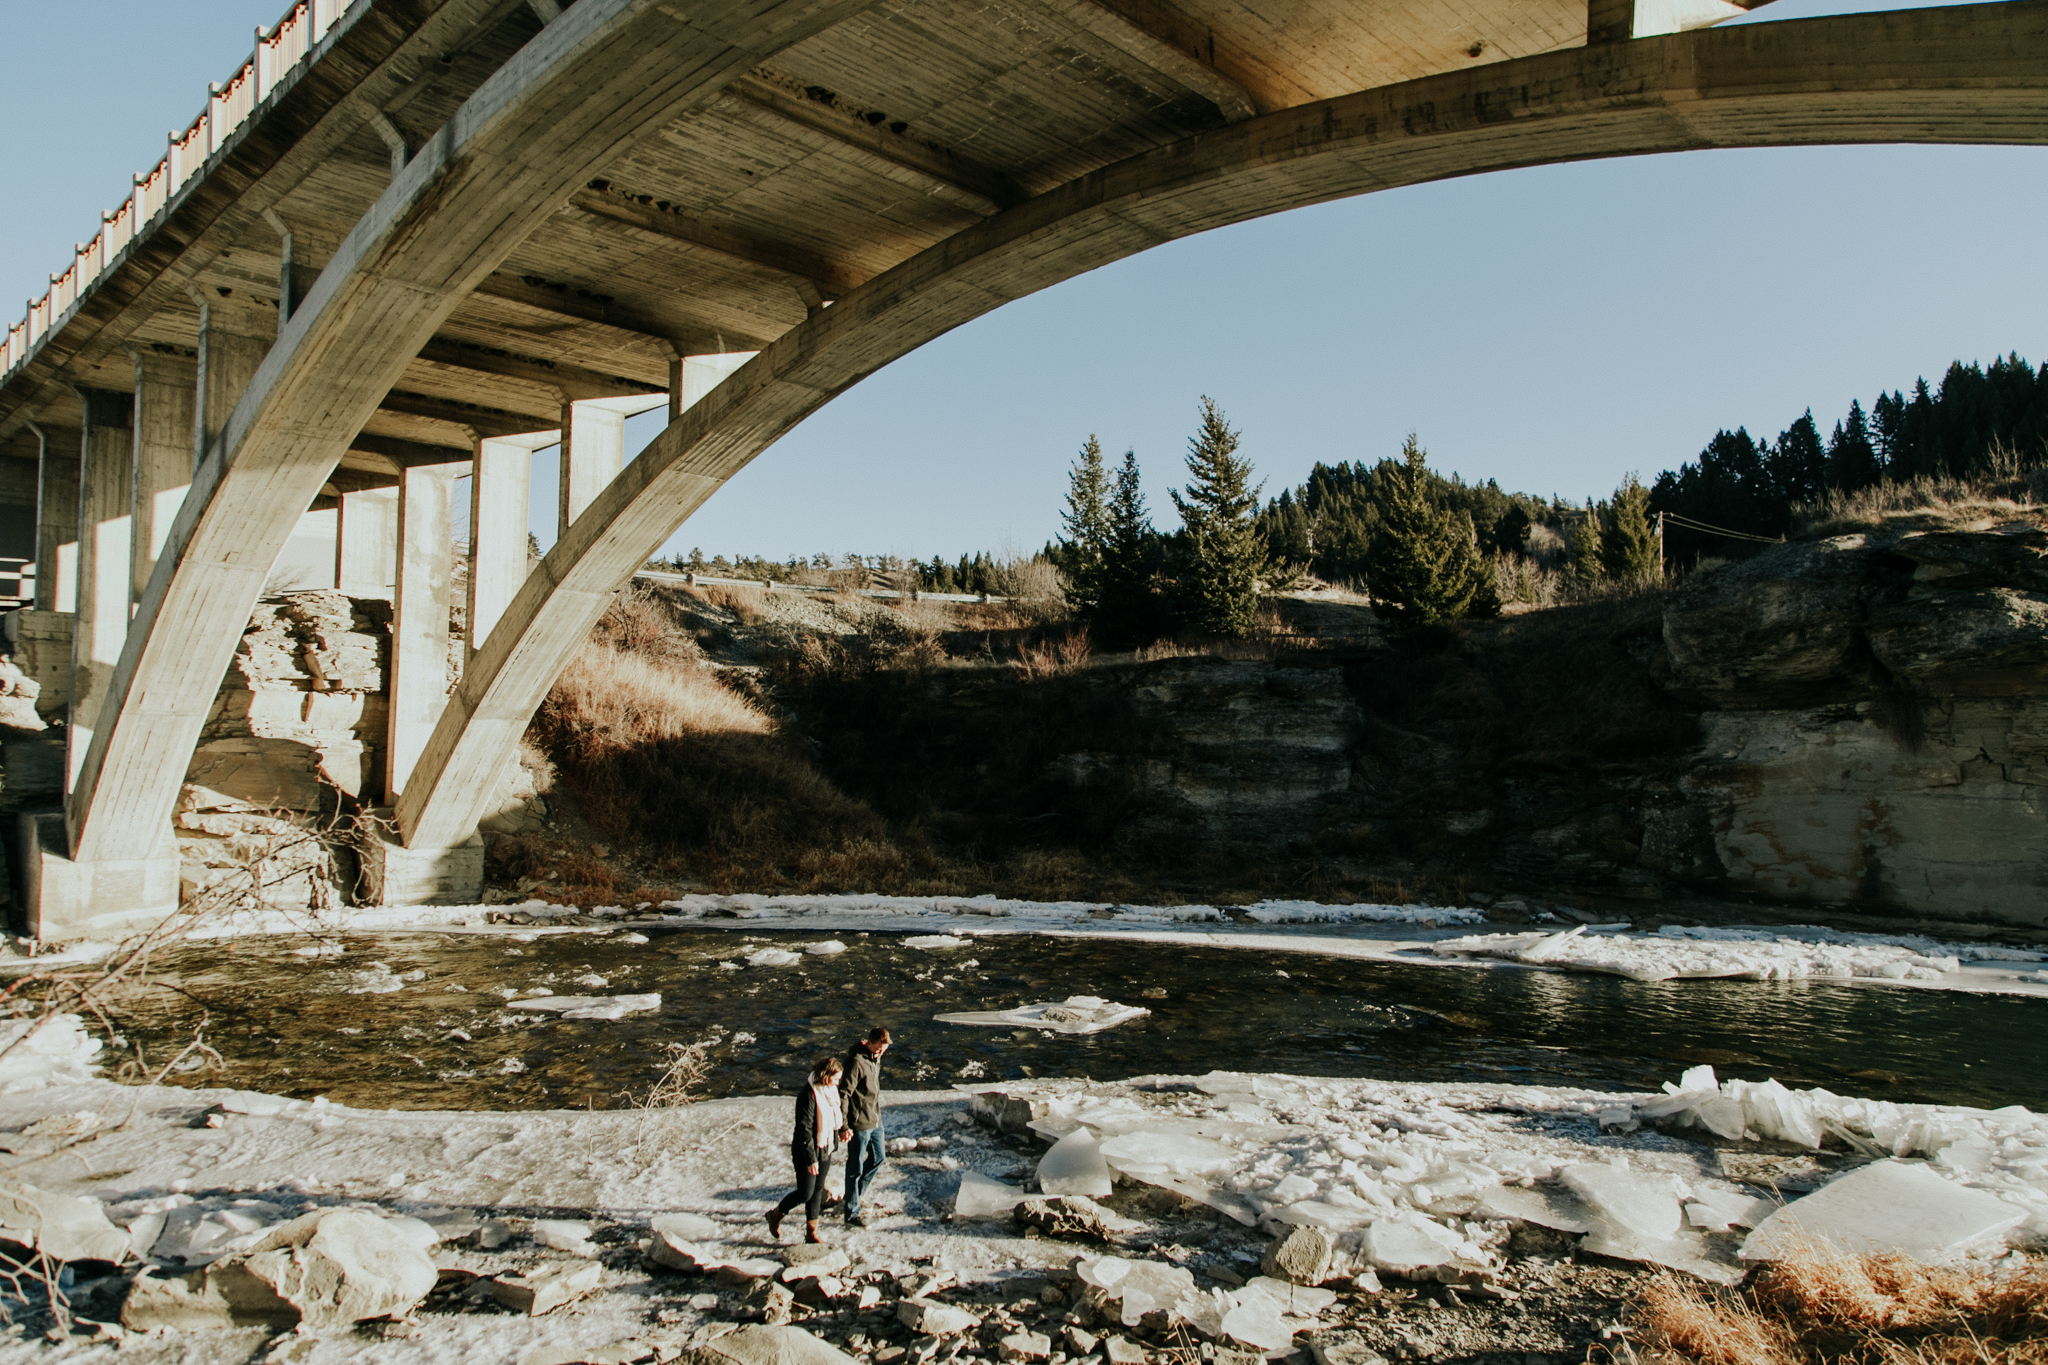 lethbridge-photographer-love-and-be-loved-photography-lundbreck-falls-engagement-clarissa-clayton-picture-image-photo--33.jpg